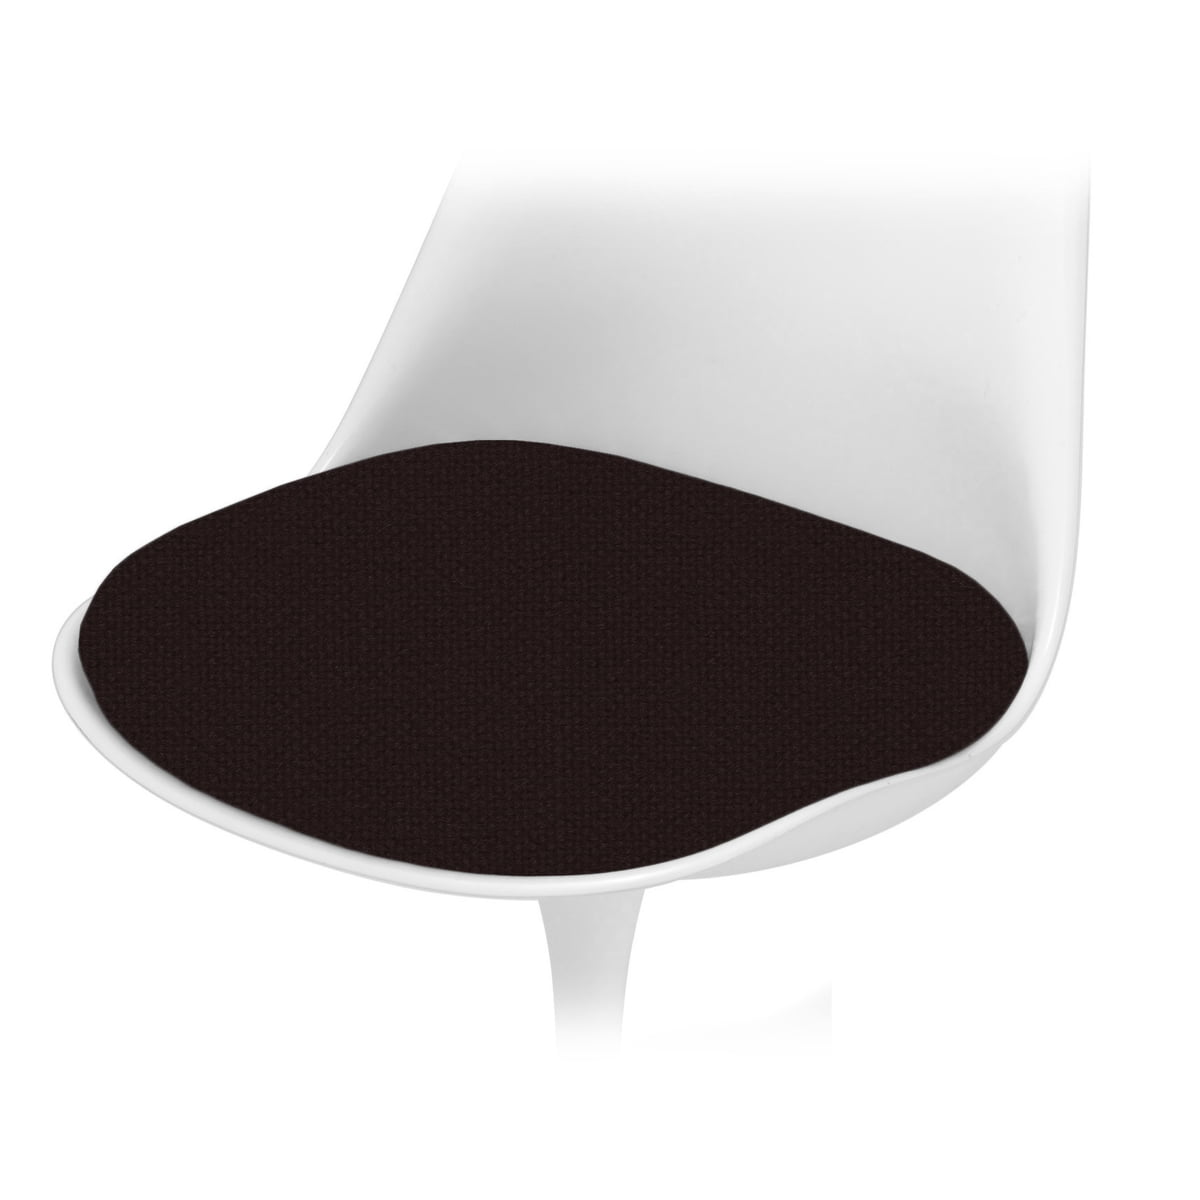 Cushion for saarinen tulip chair by knoll for Chaise 3 pieds